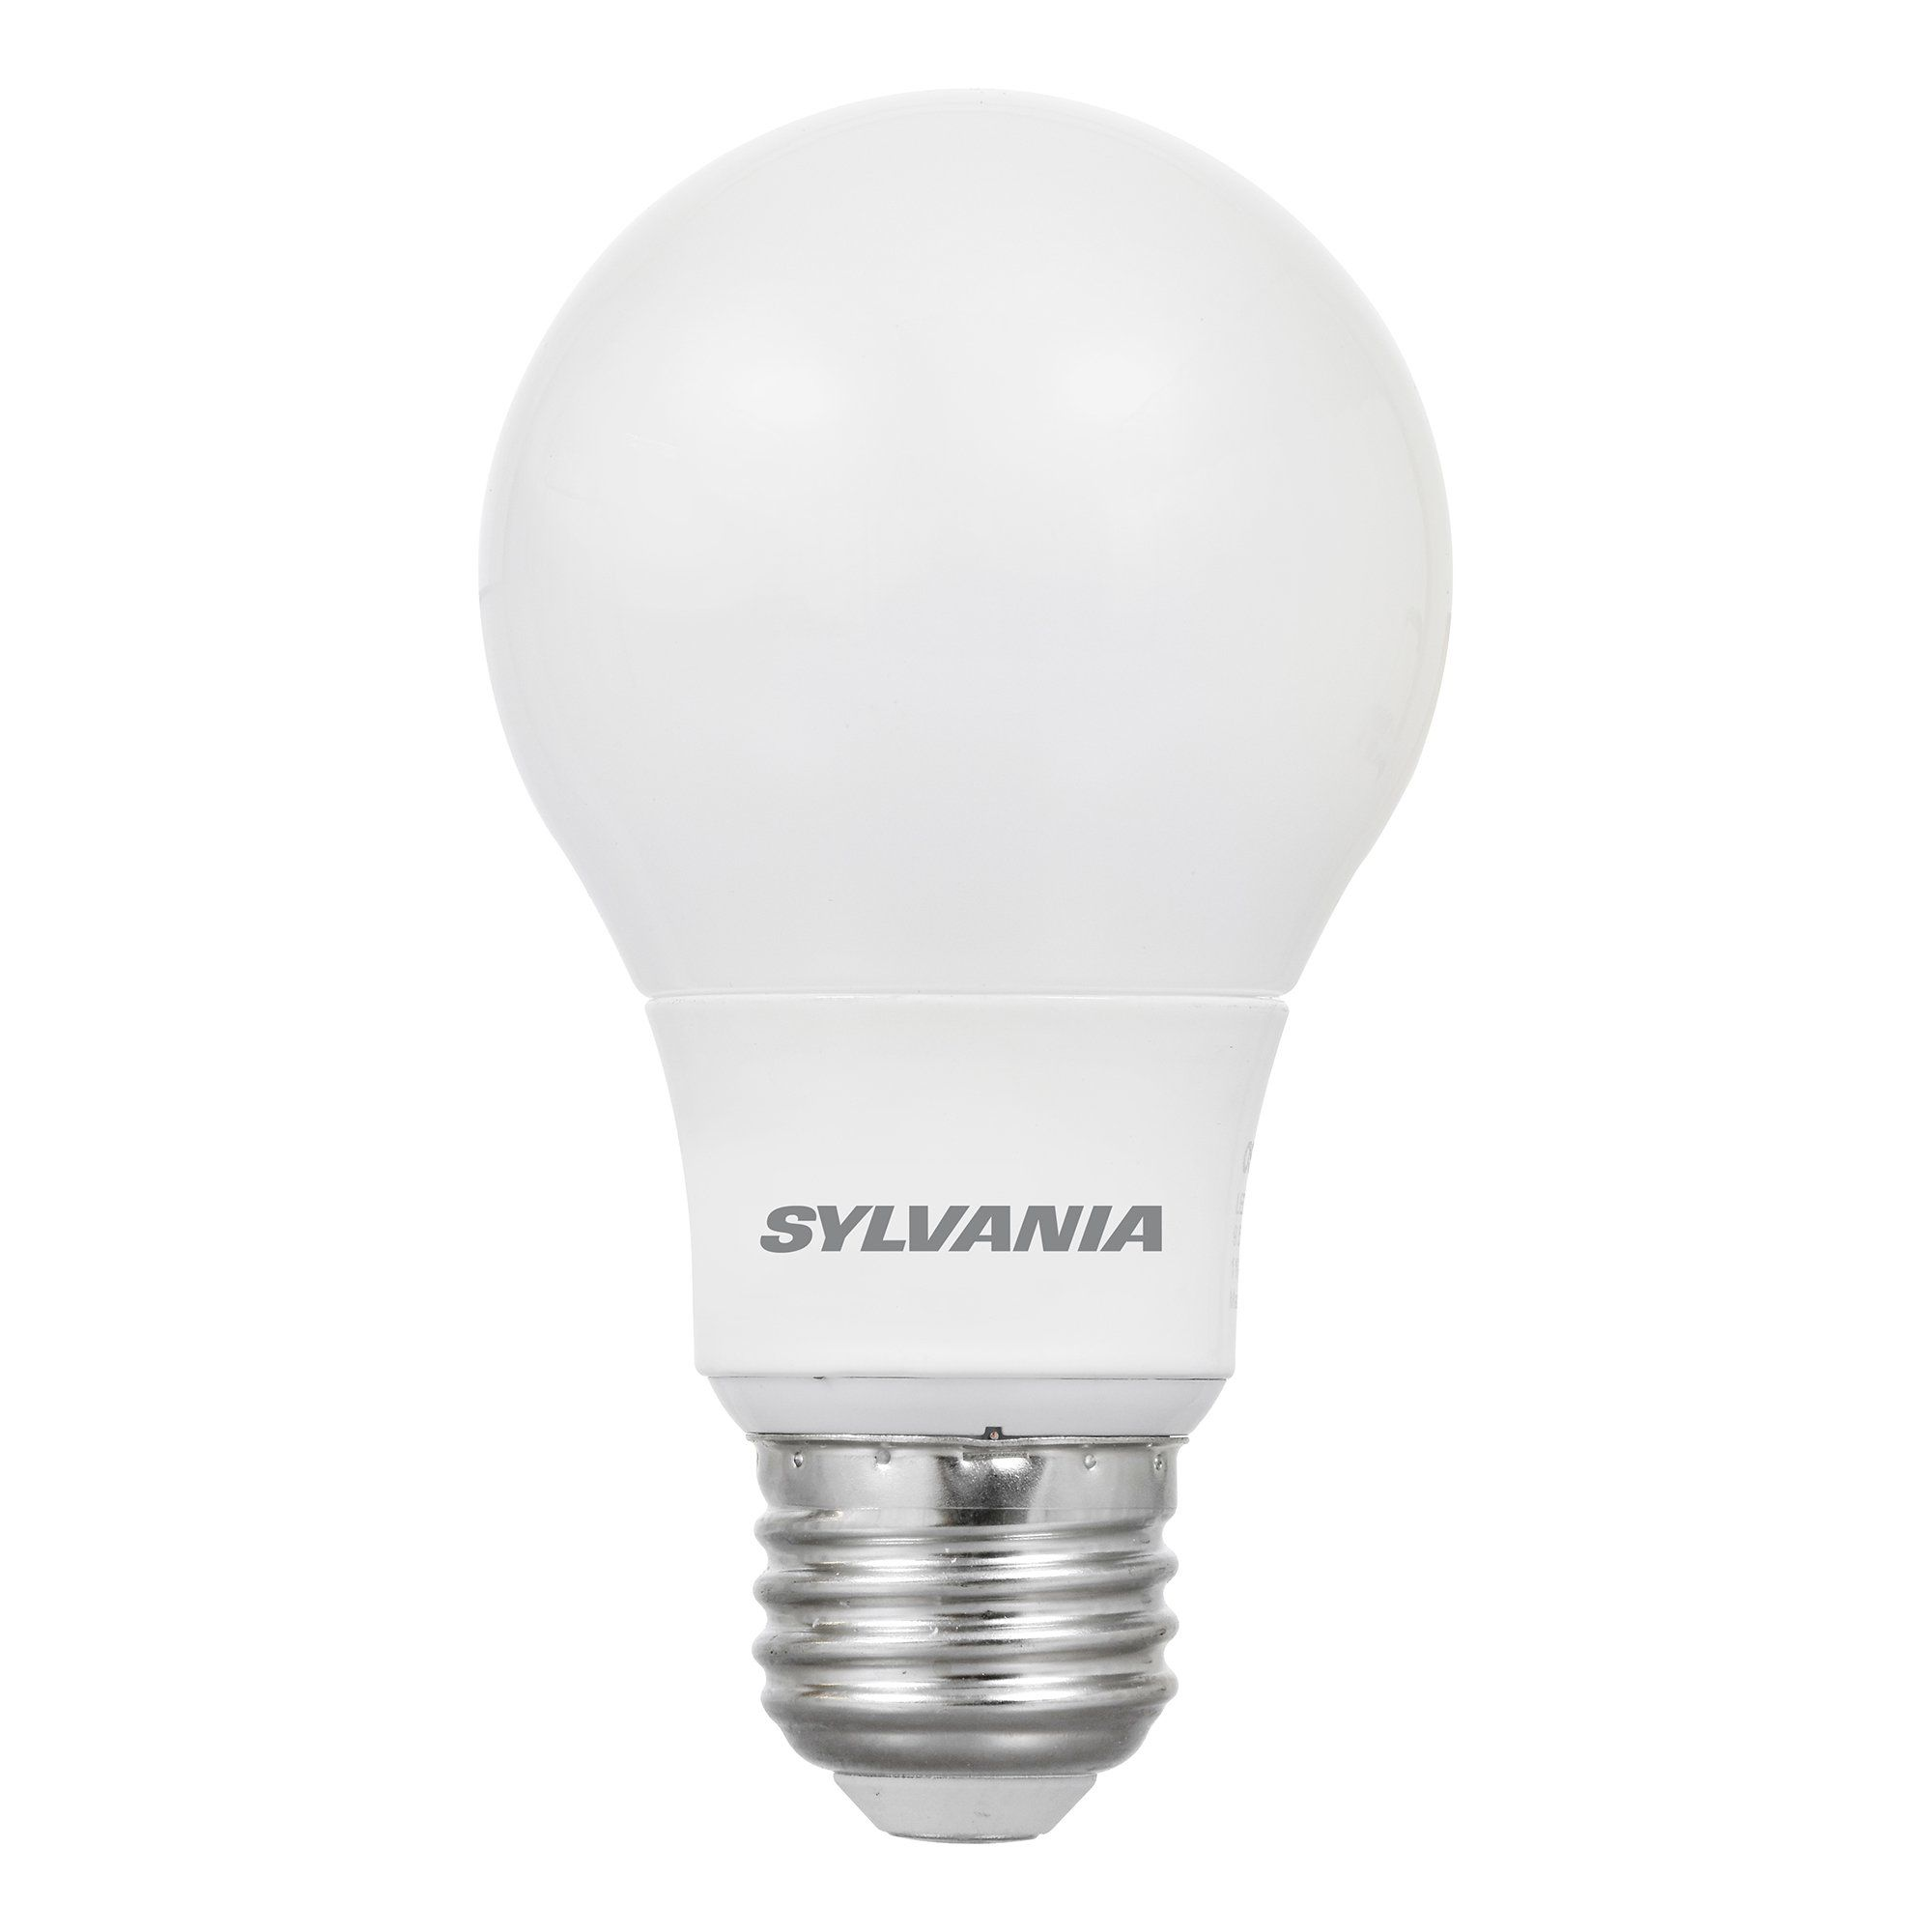 Sylvania Ultra 79684 60w 3500k Dimmable Bright White Energy Star